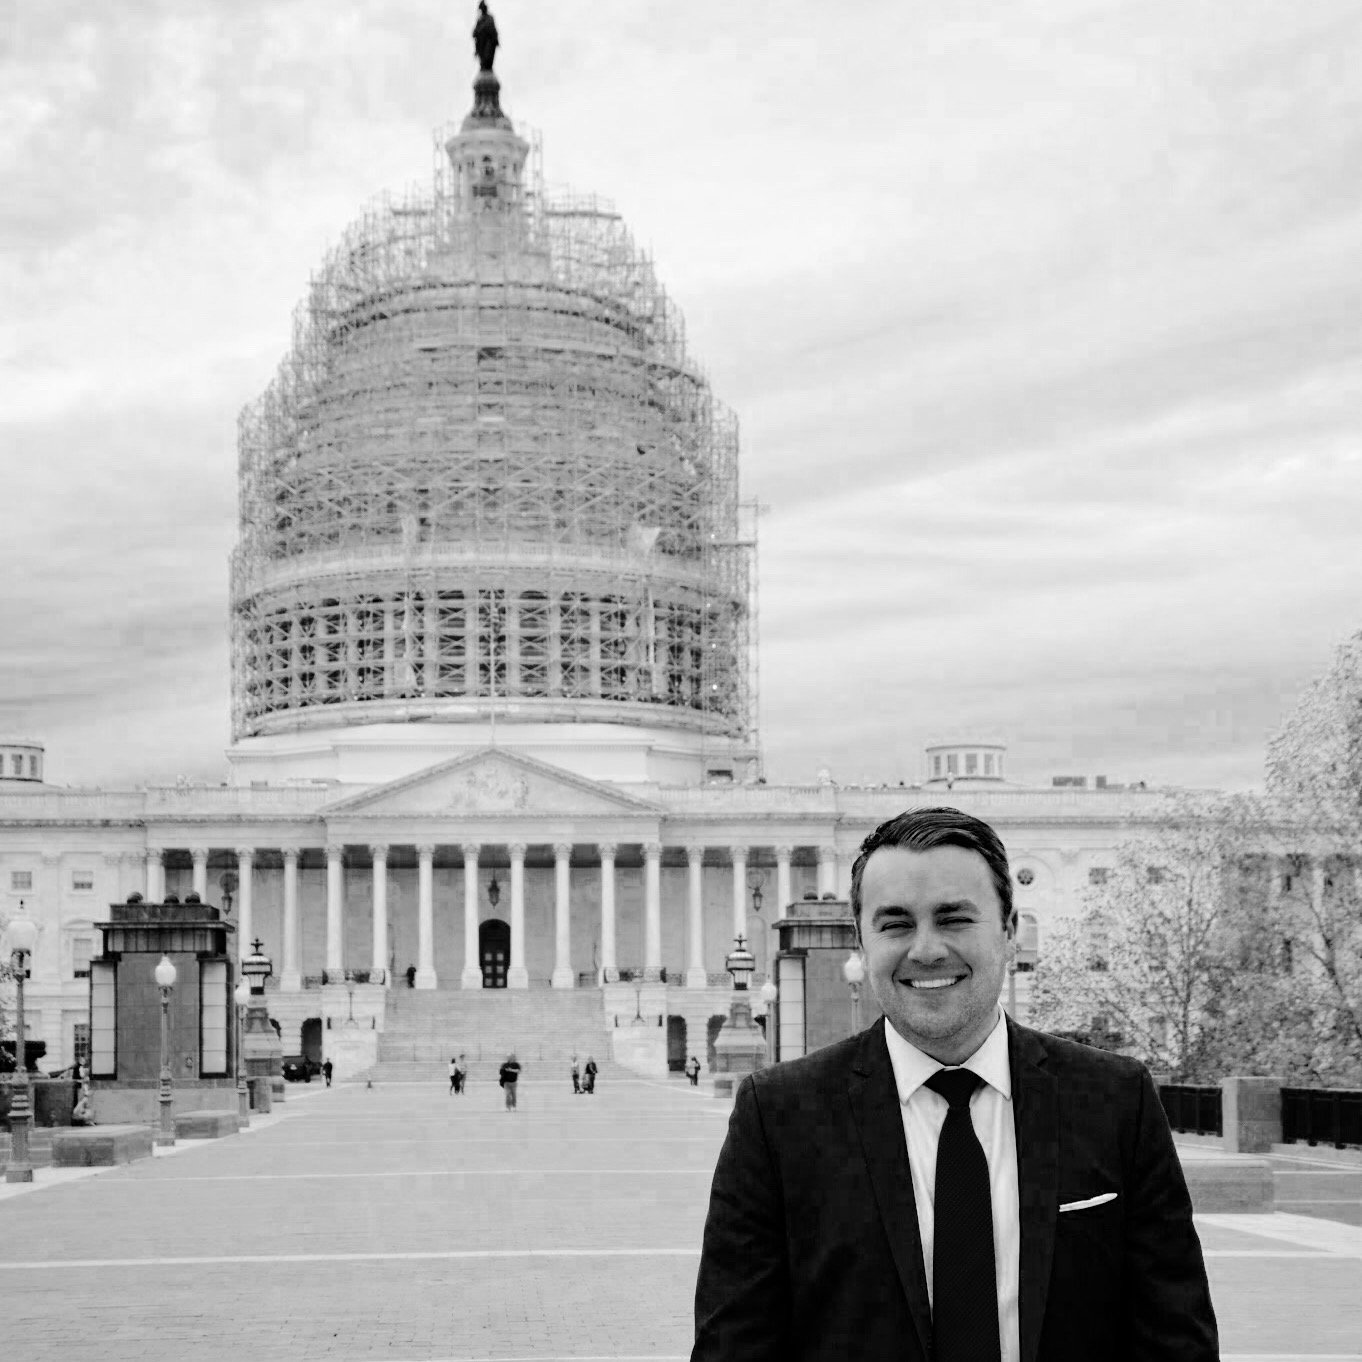 Matt Whitlock stands in front of the U.S. Capitol Dome restoration project. Whitlock is working on Capitol Hill for his second time. (Image retrieved Oct. 18, 2016 from Twitter.)